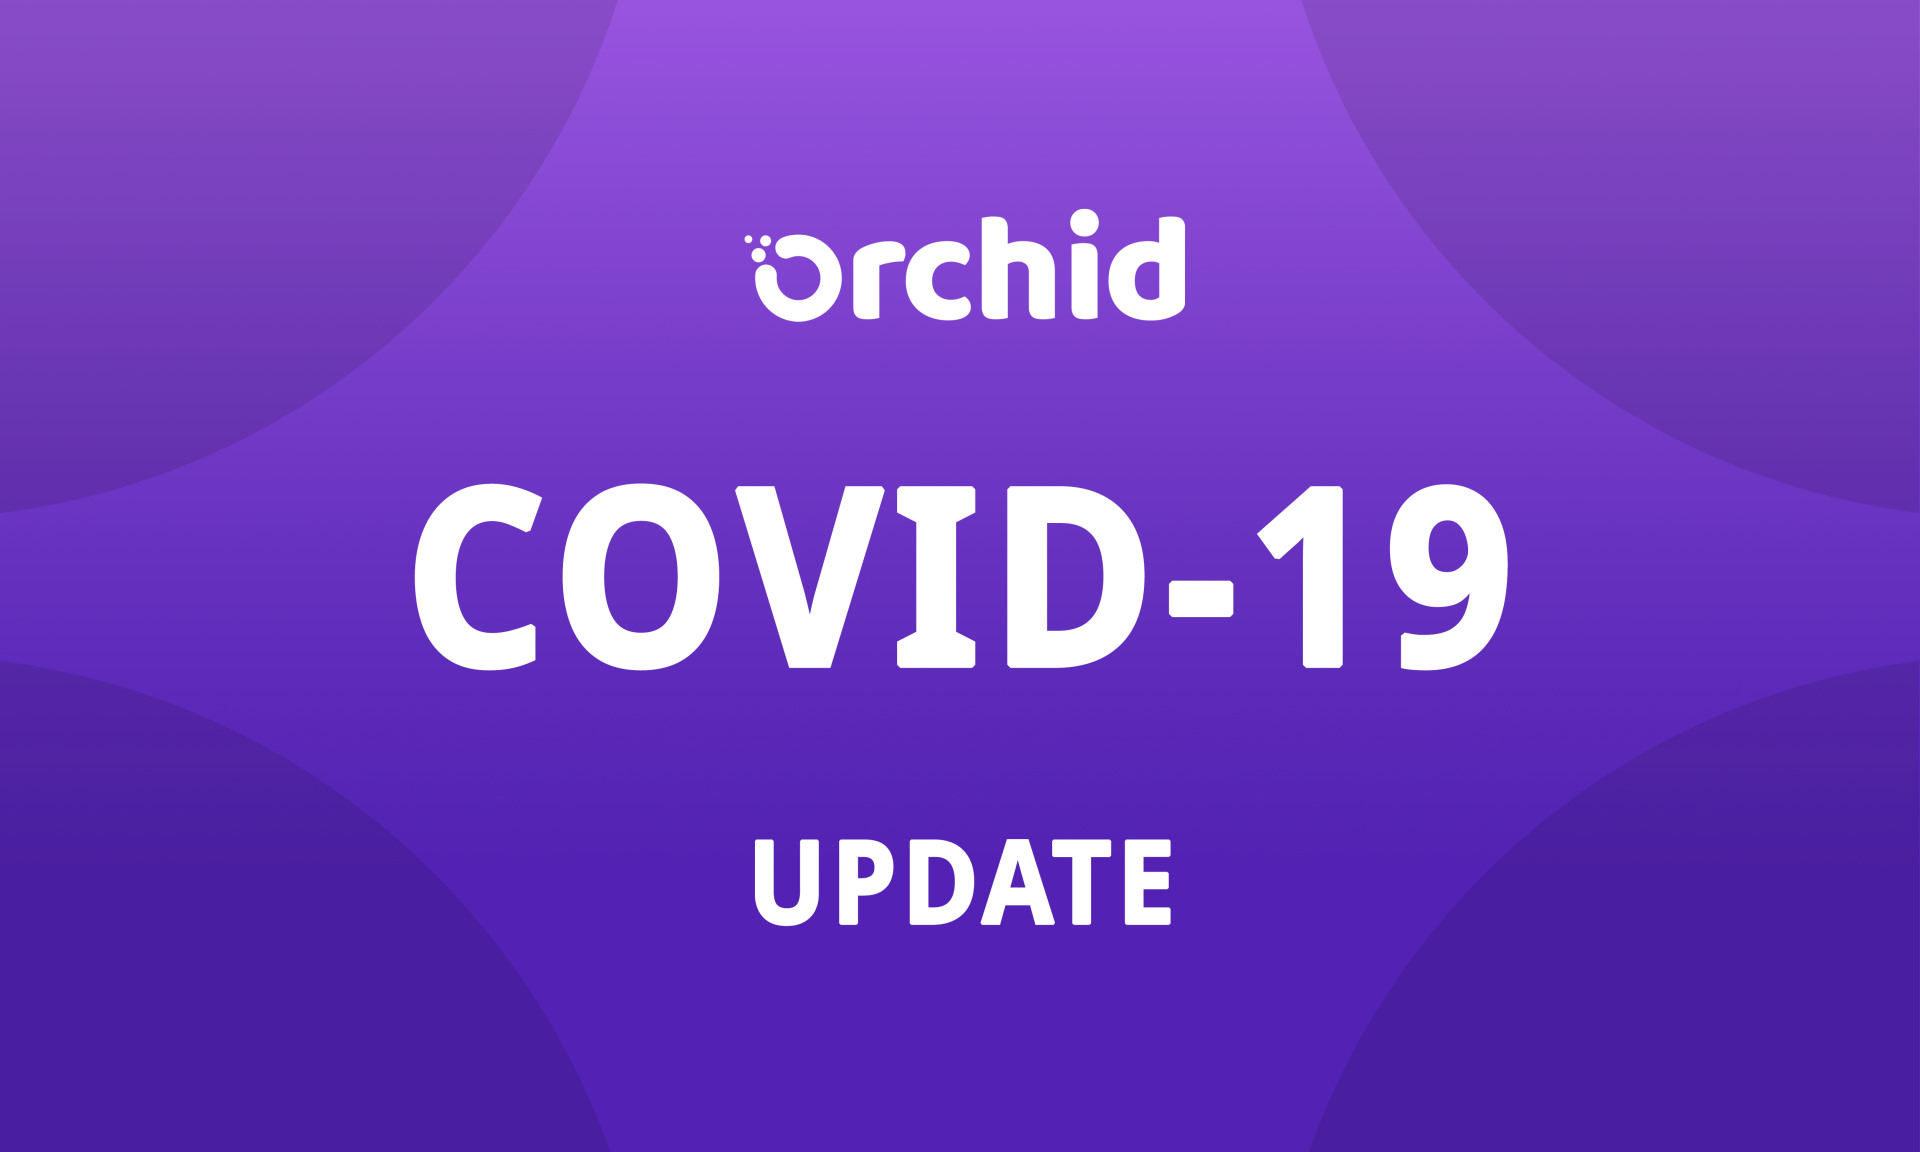 Orchid update: actions taken in response to COVID-19